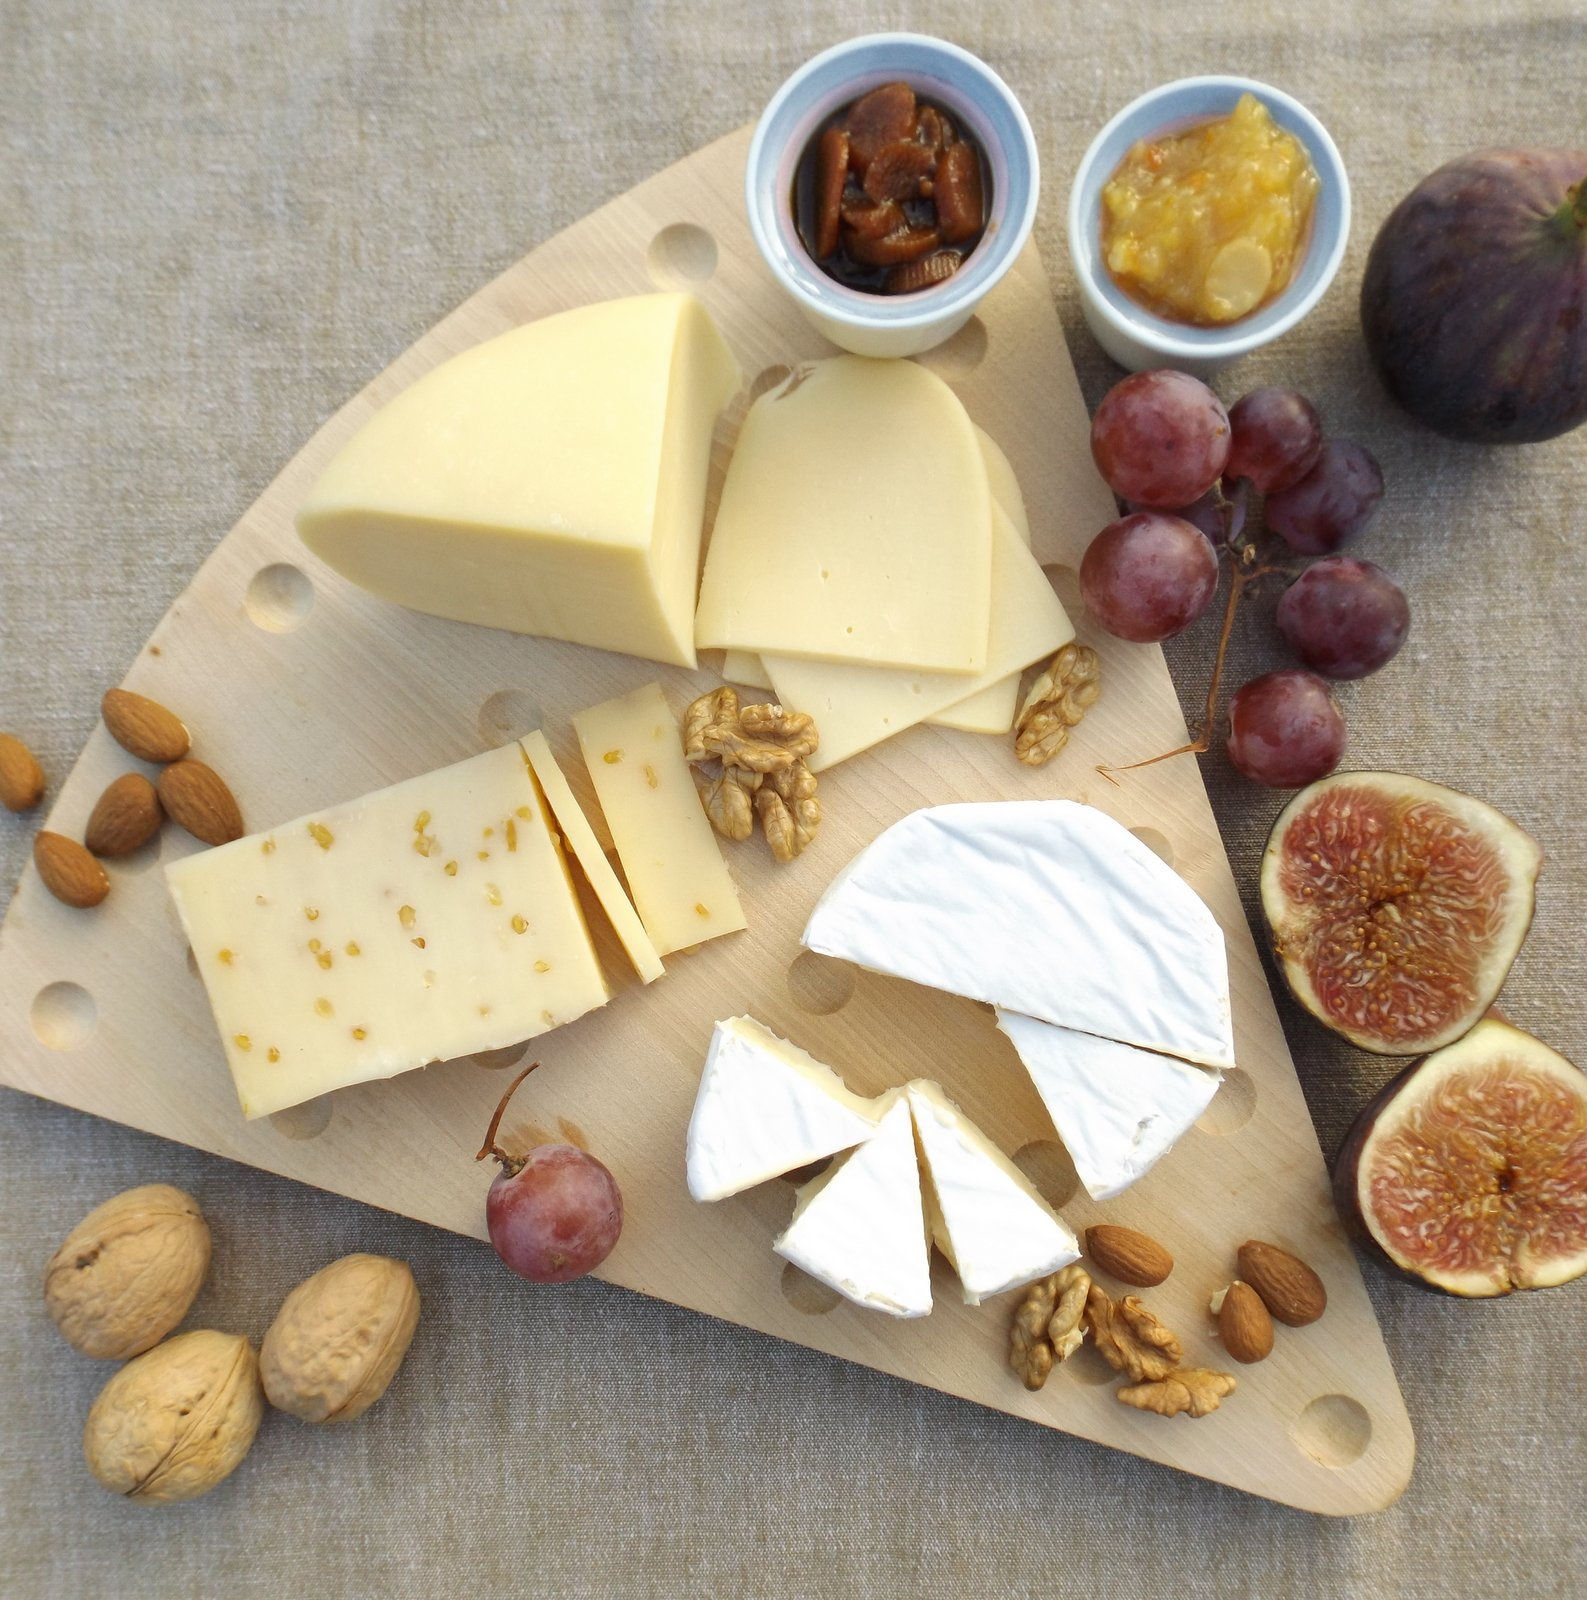 Assorted Cheese Platter Served With Fruits u0026 Crackers : cheese plate images - pezcame.com